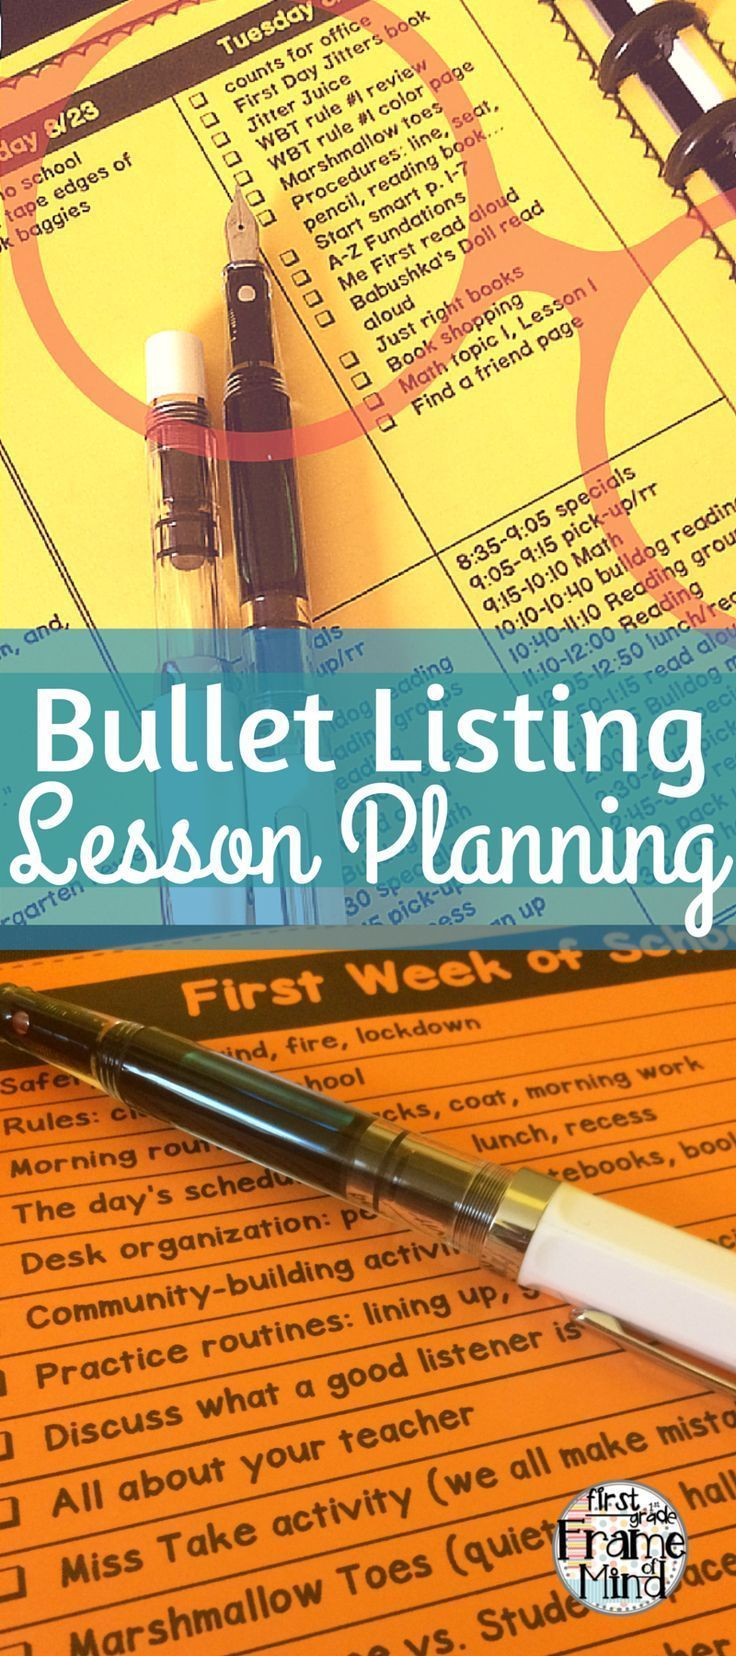 I've been bullet listing lesson planning since 2014 and I'll never go back! I love how I can have a list of things I need to teach throughout the day. I don't spend Sunday night at home planning by myself anymore, because my team enjoys doing it too! We plan together during the week, so we can all have our weekends to ourselves!